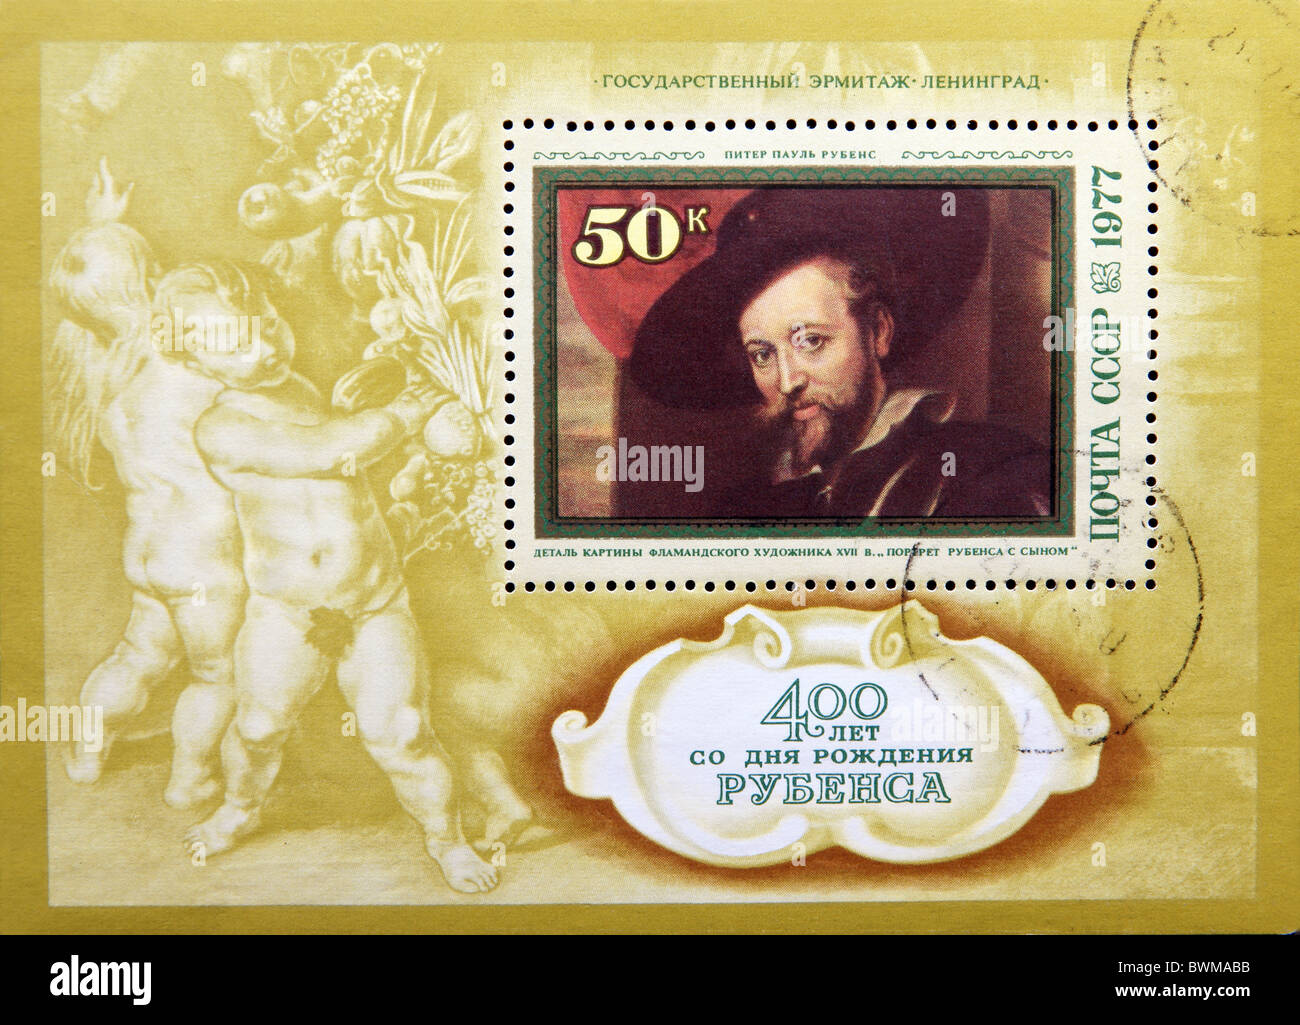 USSR - CIRCA 1977: postage stamp publicized on the occasion of the four hundredth anniversary of Peter Paul Rubens - Stock Image